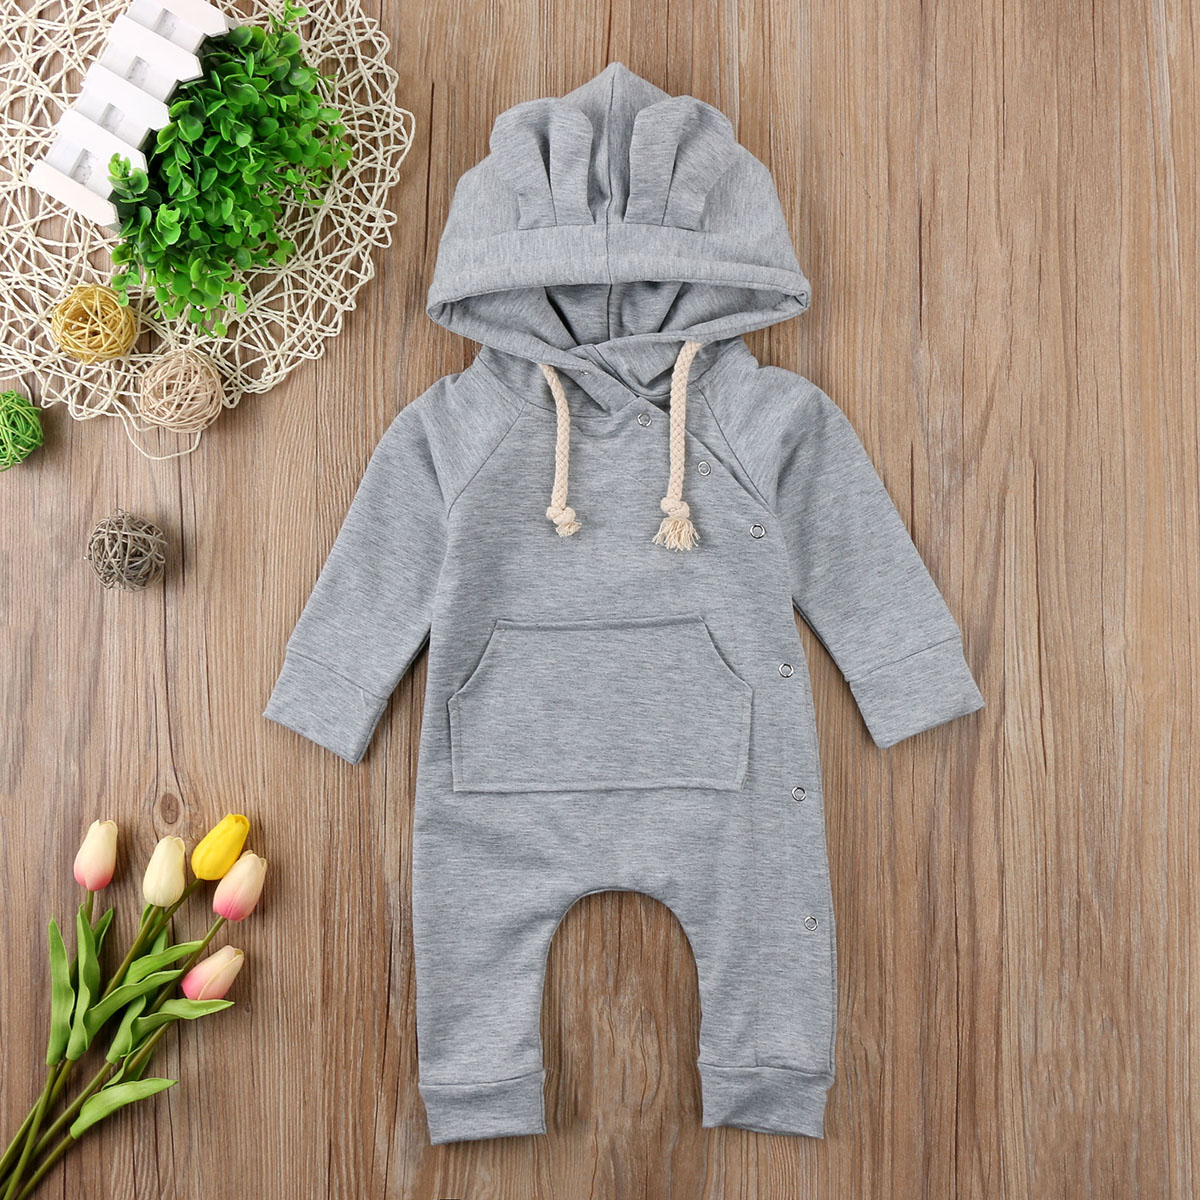 Solid Color Gray Kids Baby Boy Girl Hoodie Infant   Romper   Jumpsuit Long Sleeve Hooded Clothes Sweater Outfit